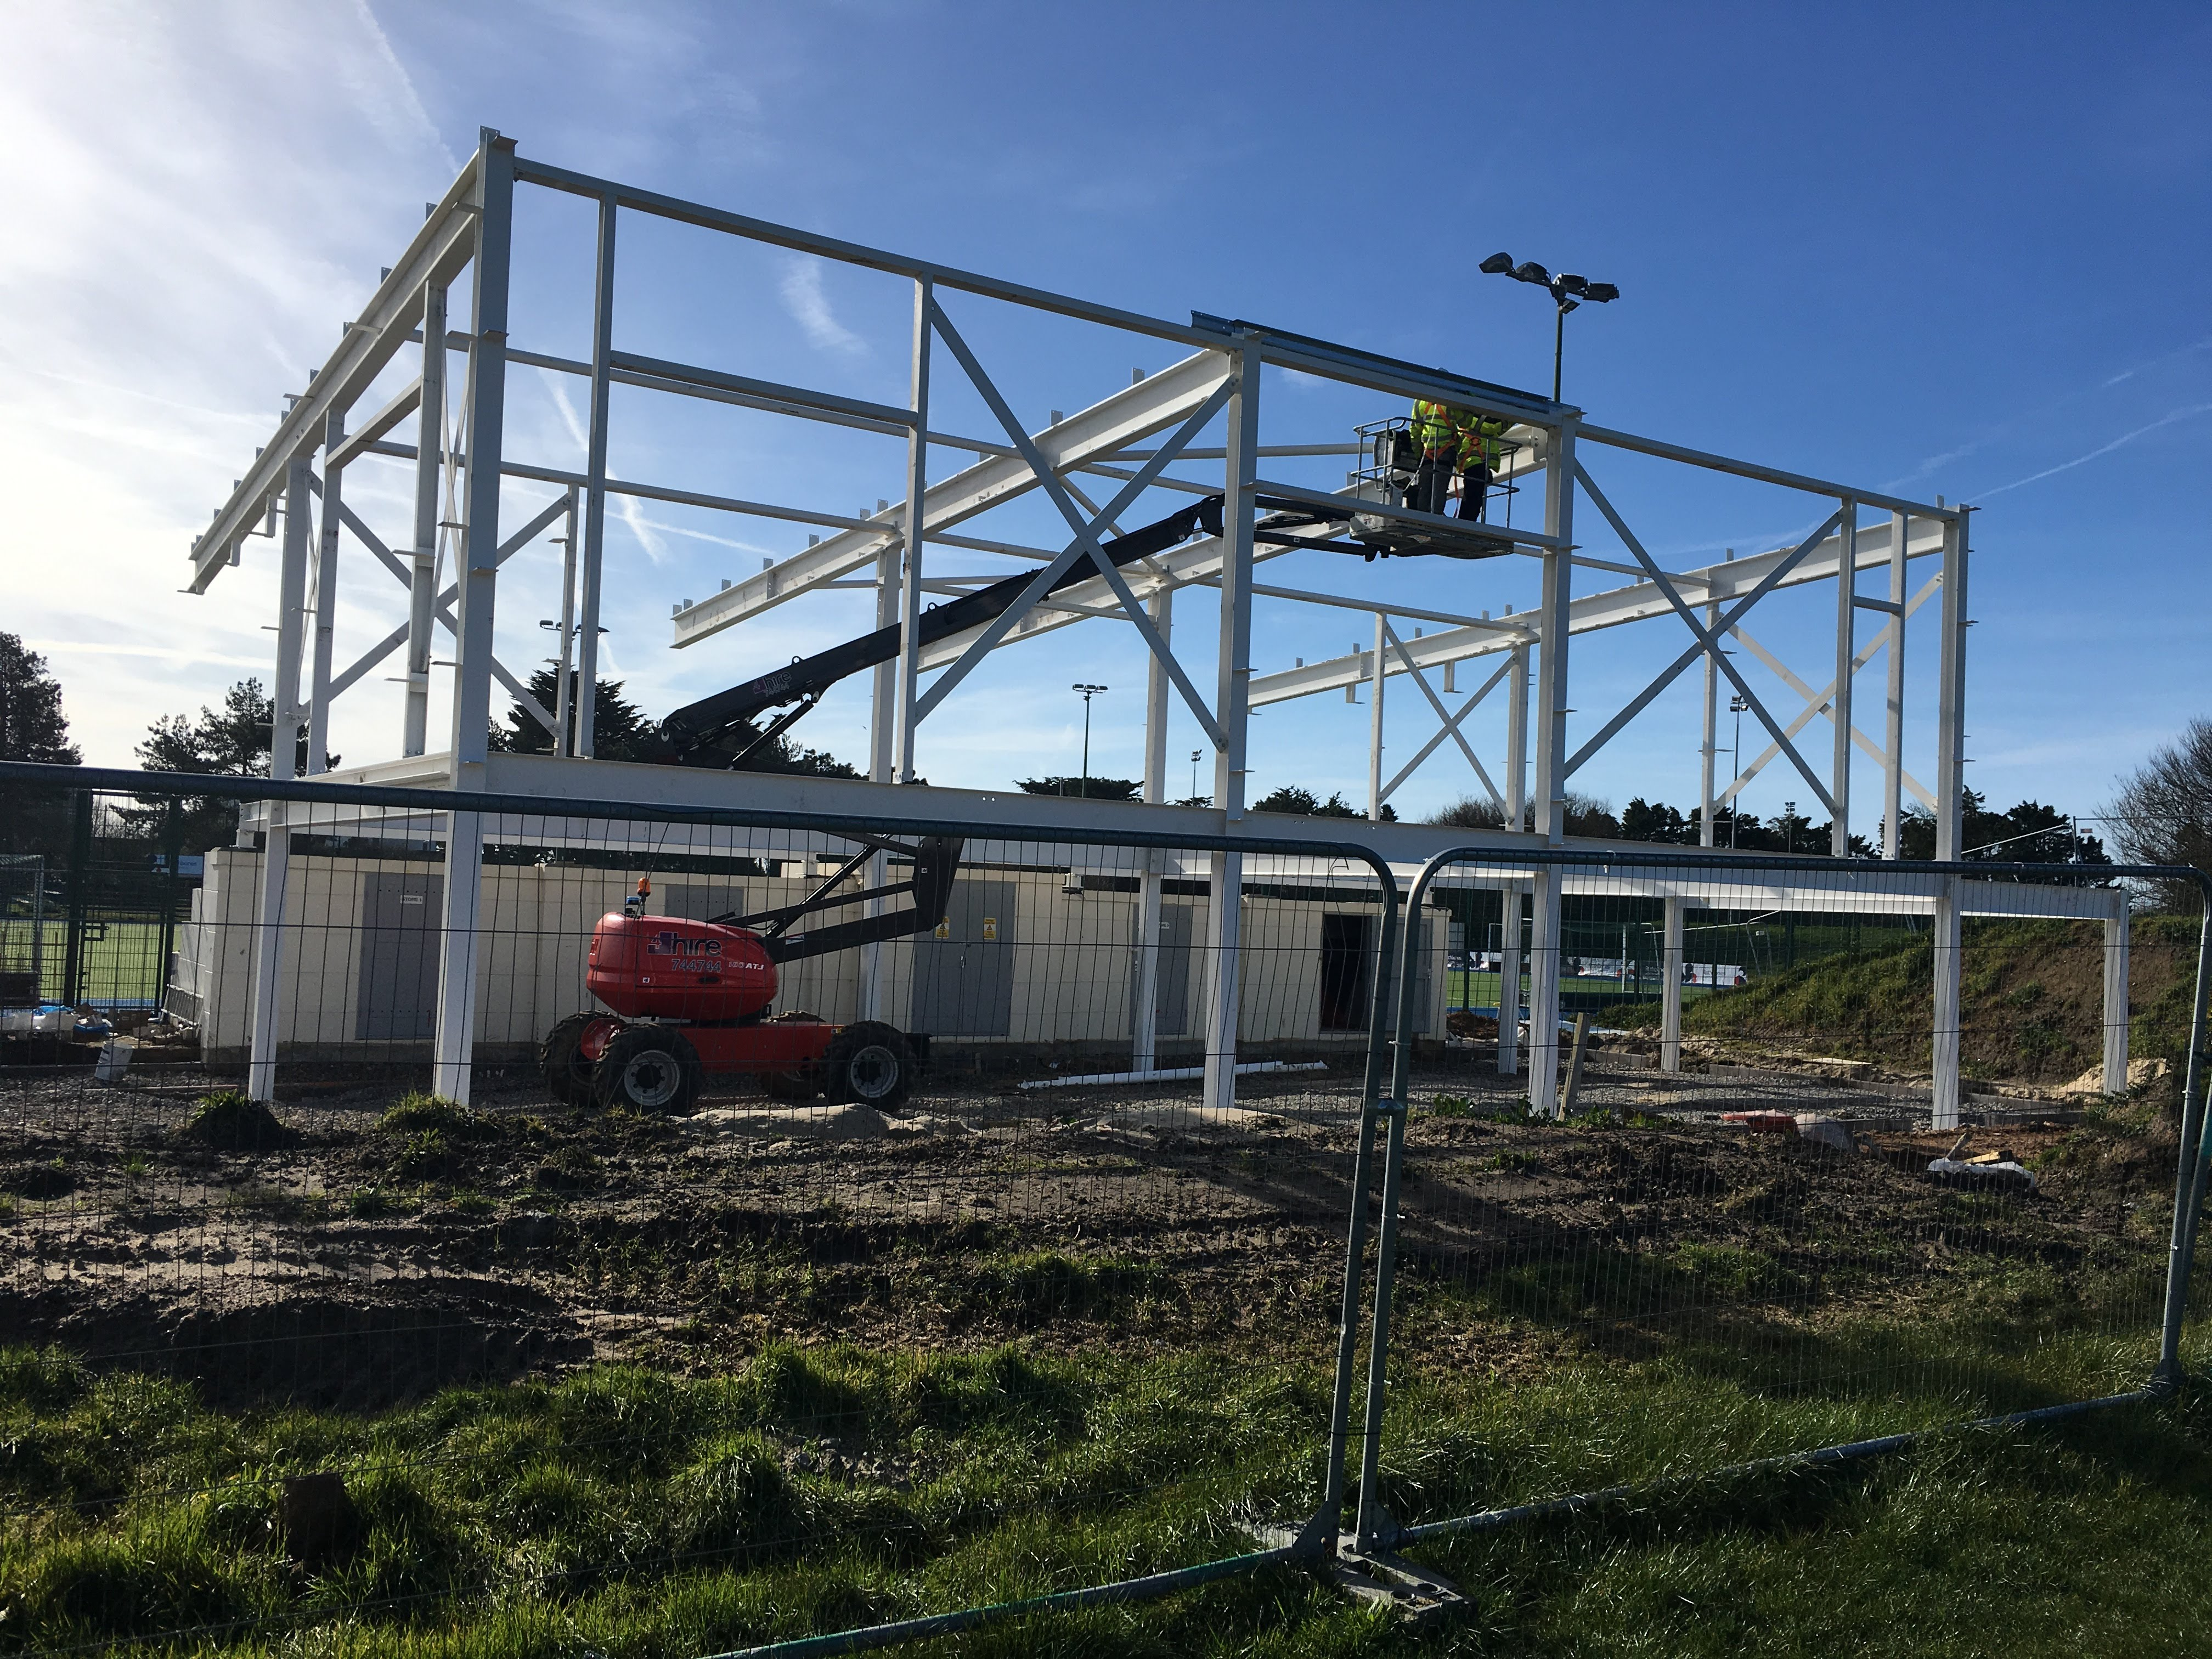 Clubhouse update - 20th February